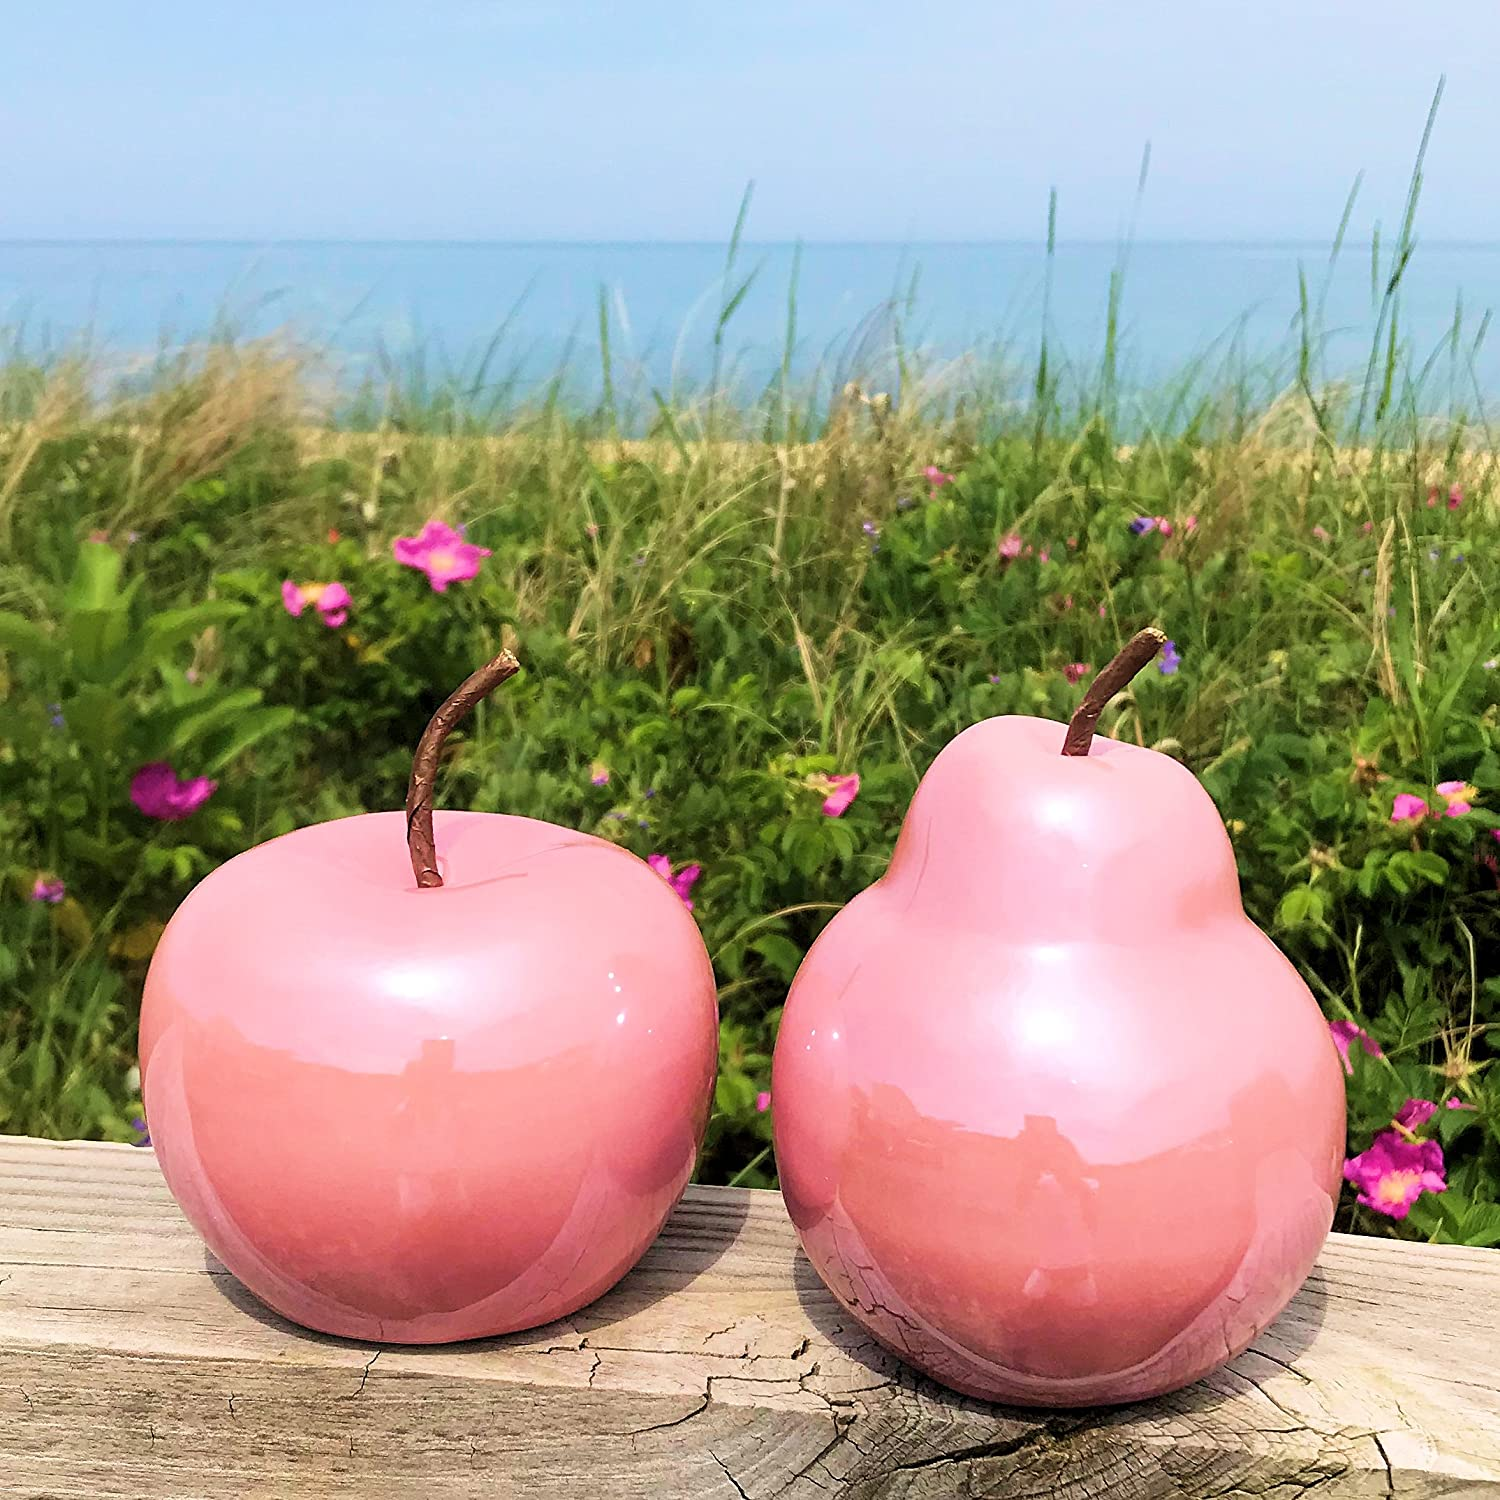 Bendable Stem Pink Each 4 Inches in Diameter WHW Whole House Worlds Hamptons Faux Apple and Pear Porcelain Counter Top Art 2.84 Set of 2 Ultra Bright Glaze